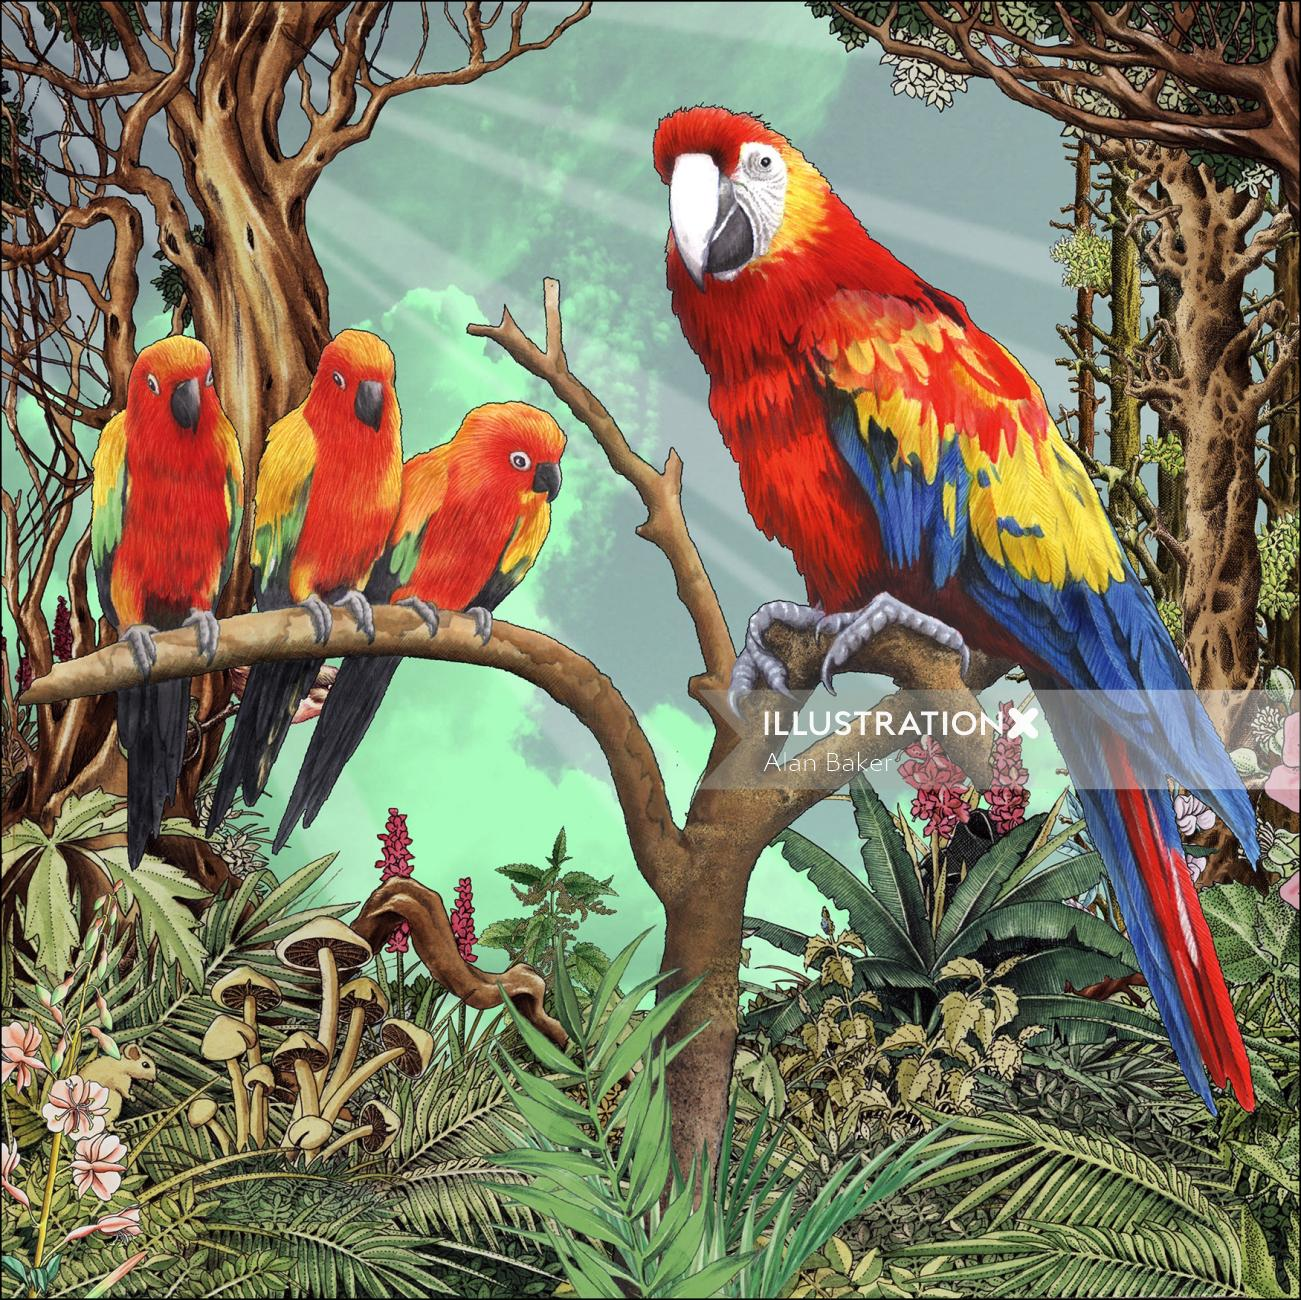 parrots in a fantasy forest